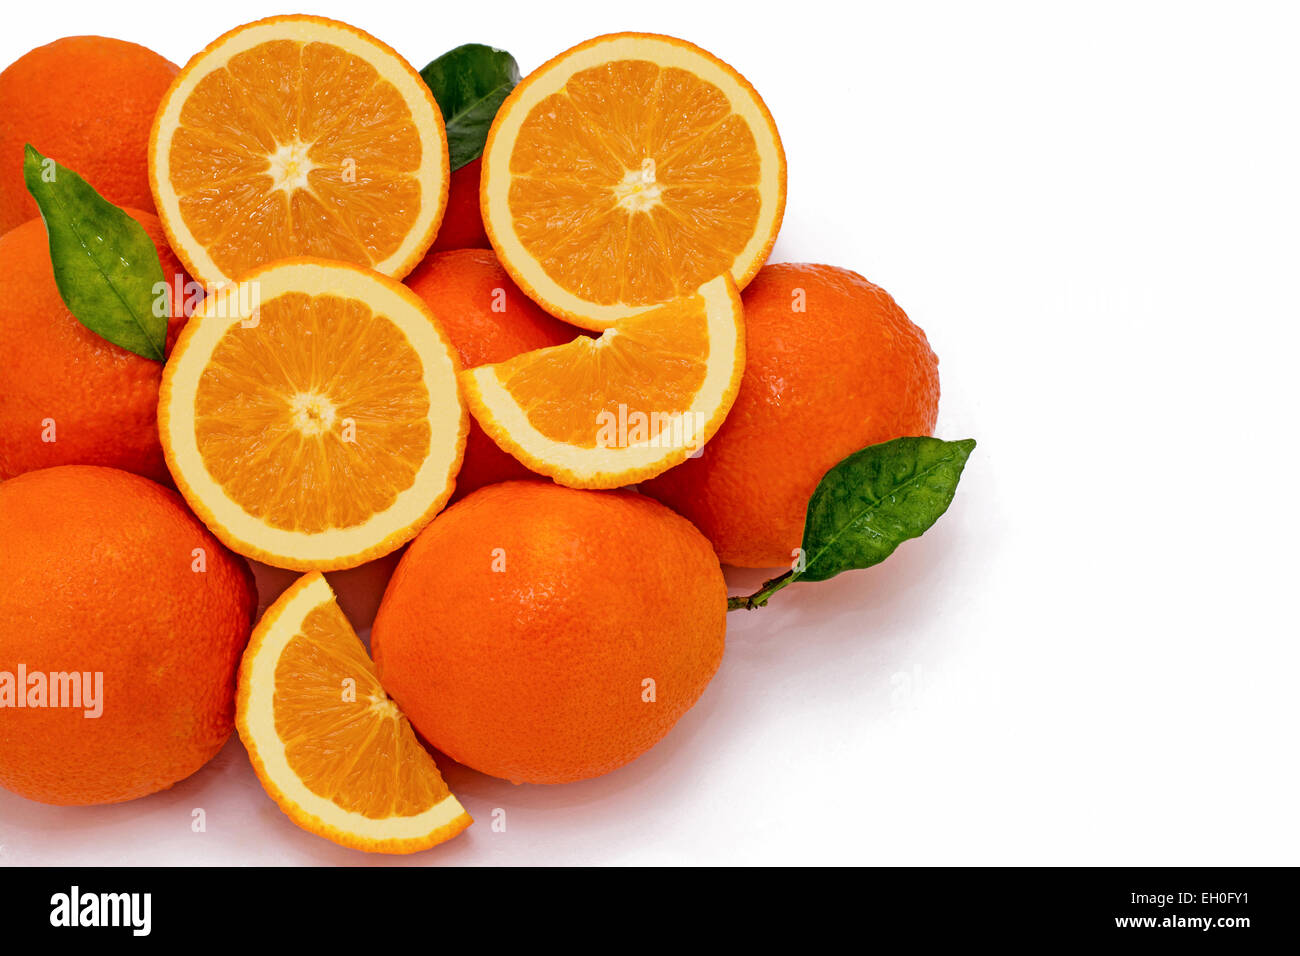 A group of Juicy Oranges half quarter  whole with green leaves on a white background and room for text - Stock Image